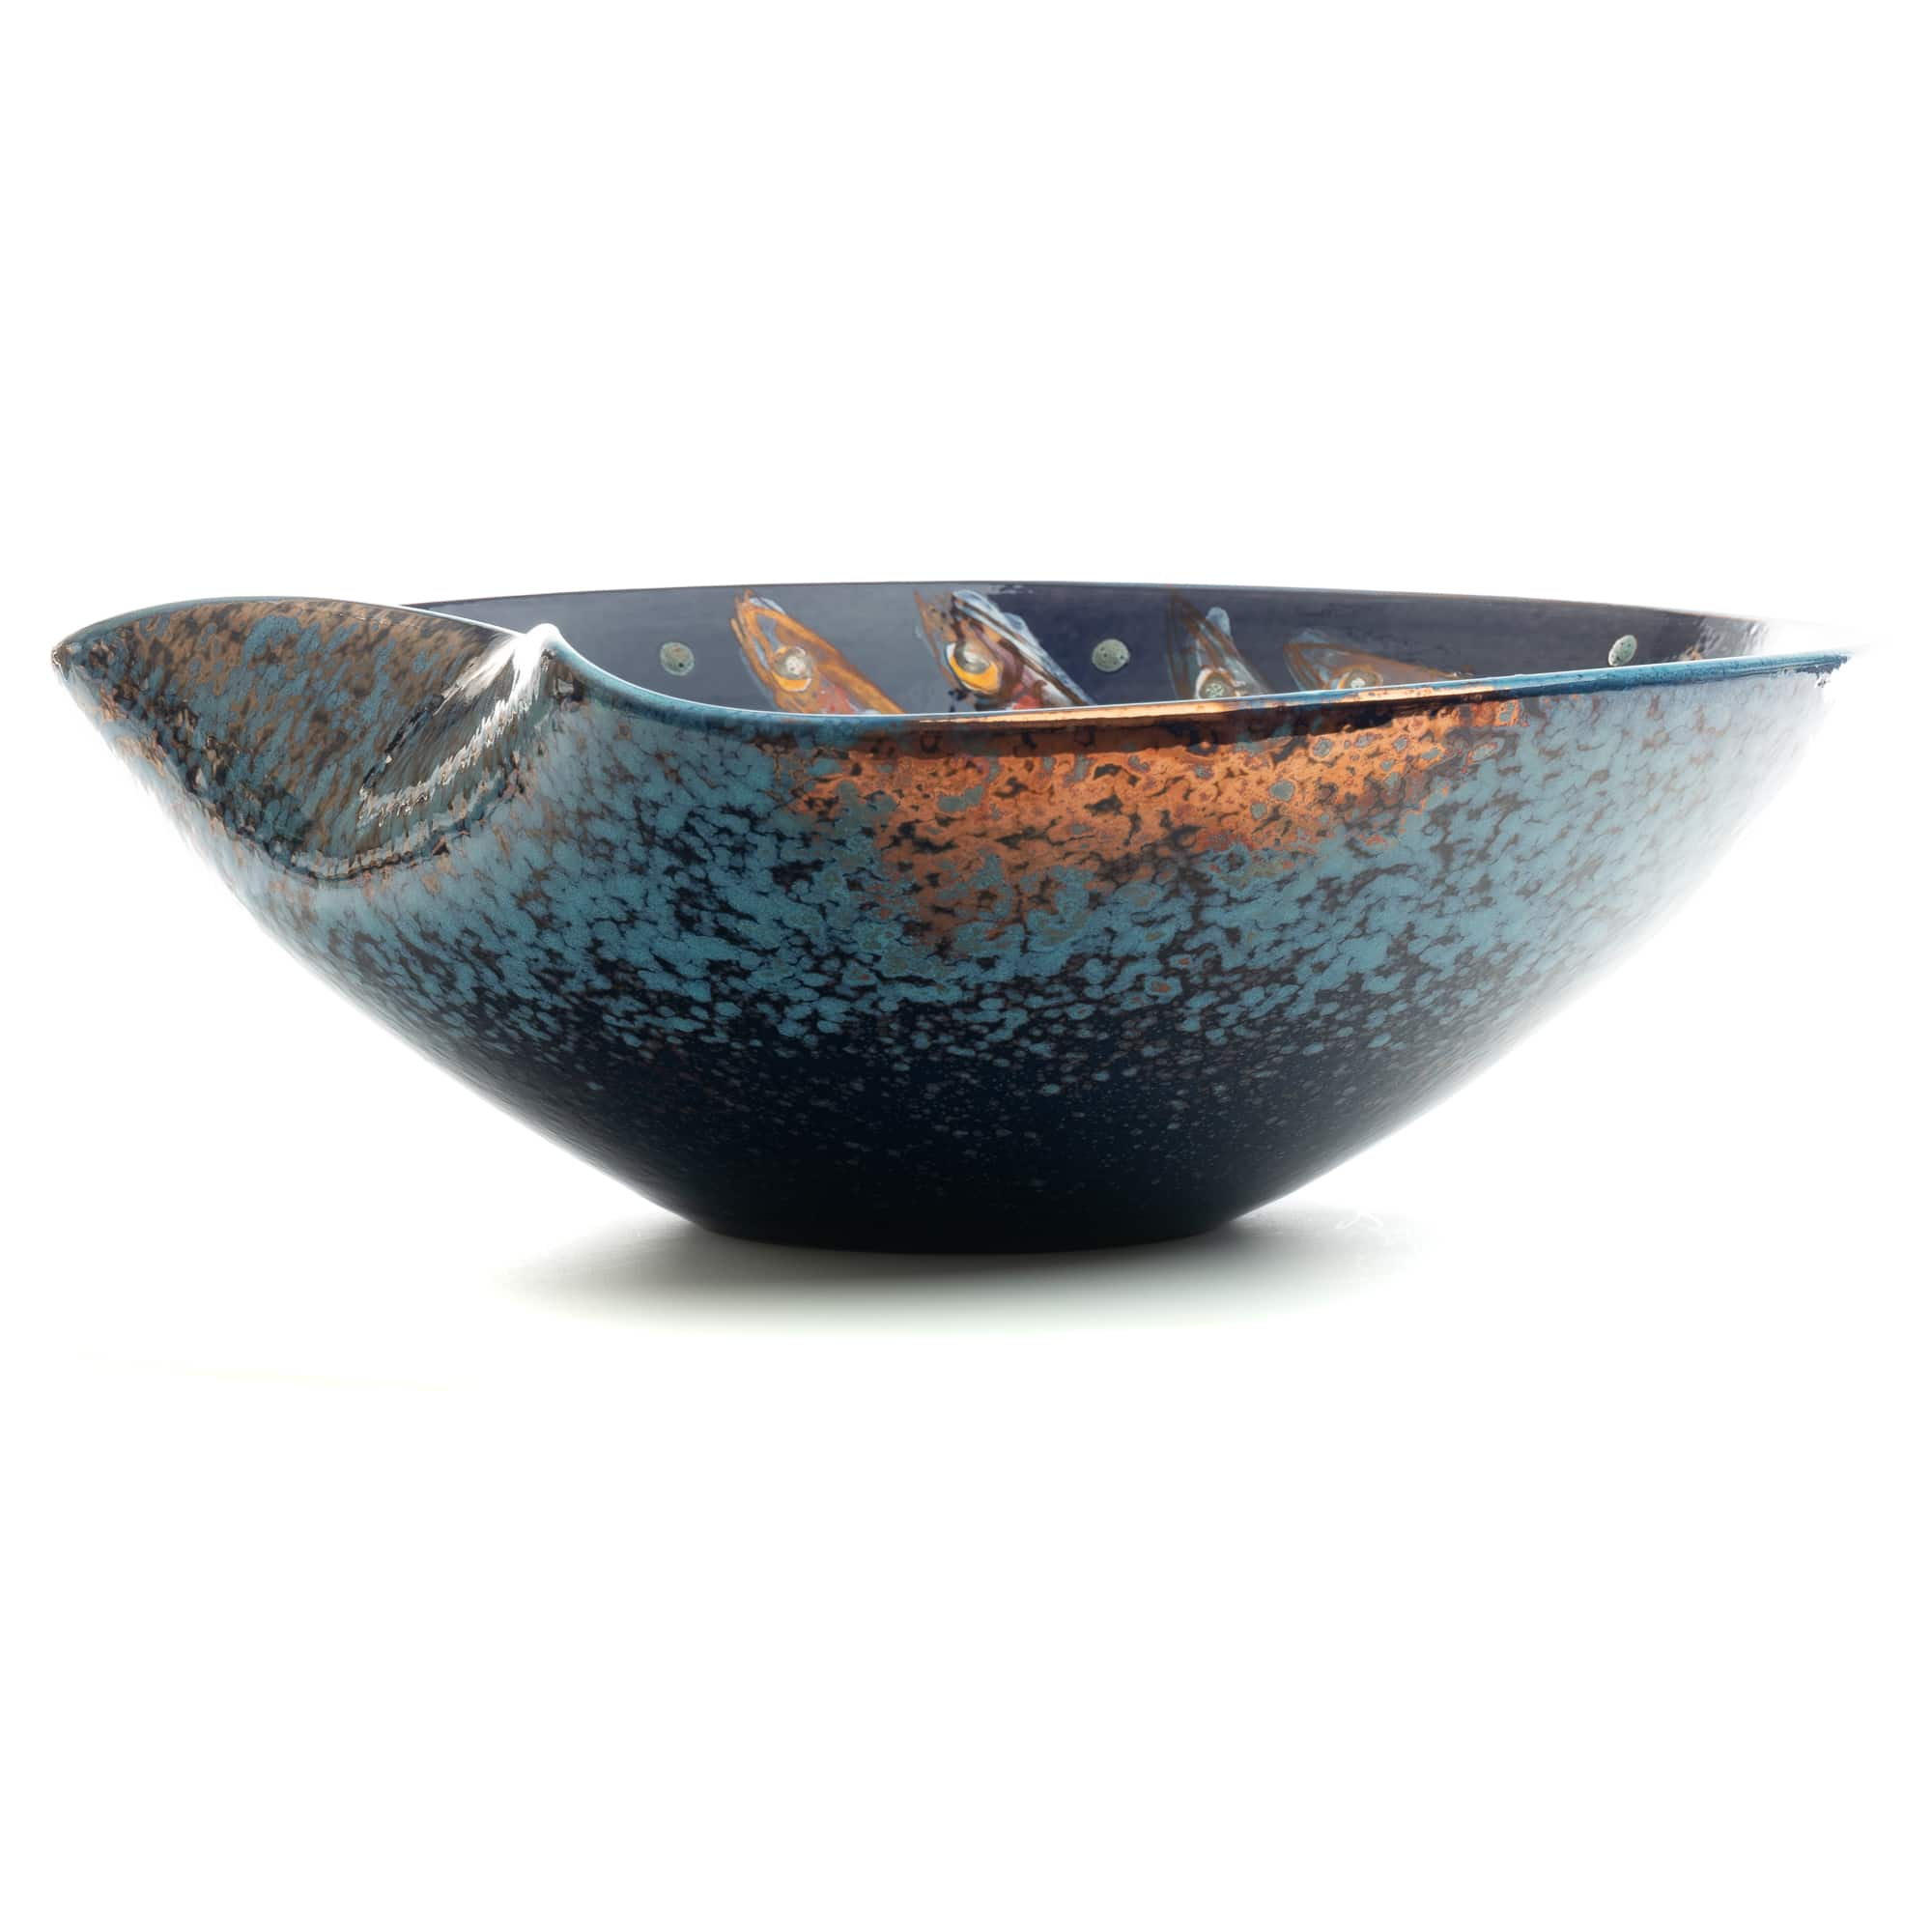 "Vignoli 16"" Anchovie Wave in Chaos Centerpiece Bowl"